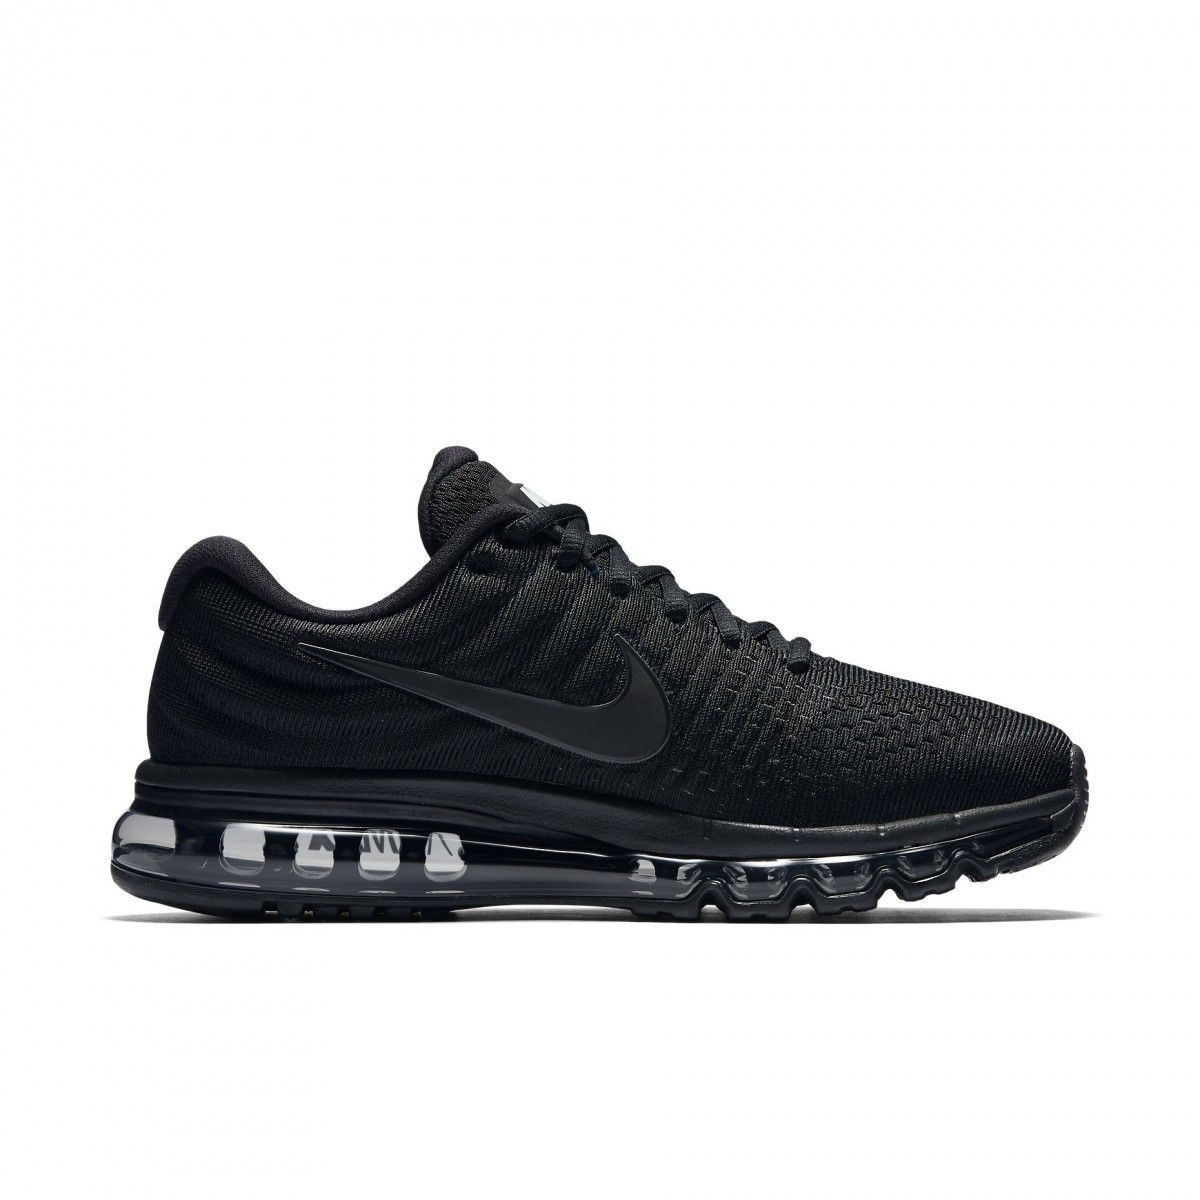 huge selection of ca11b 207c8 Baskets Nike Air Max 2017 Noir Homme - Taille   42 43 44 45 46 40 41 47